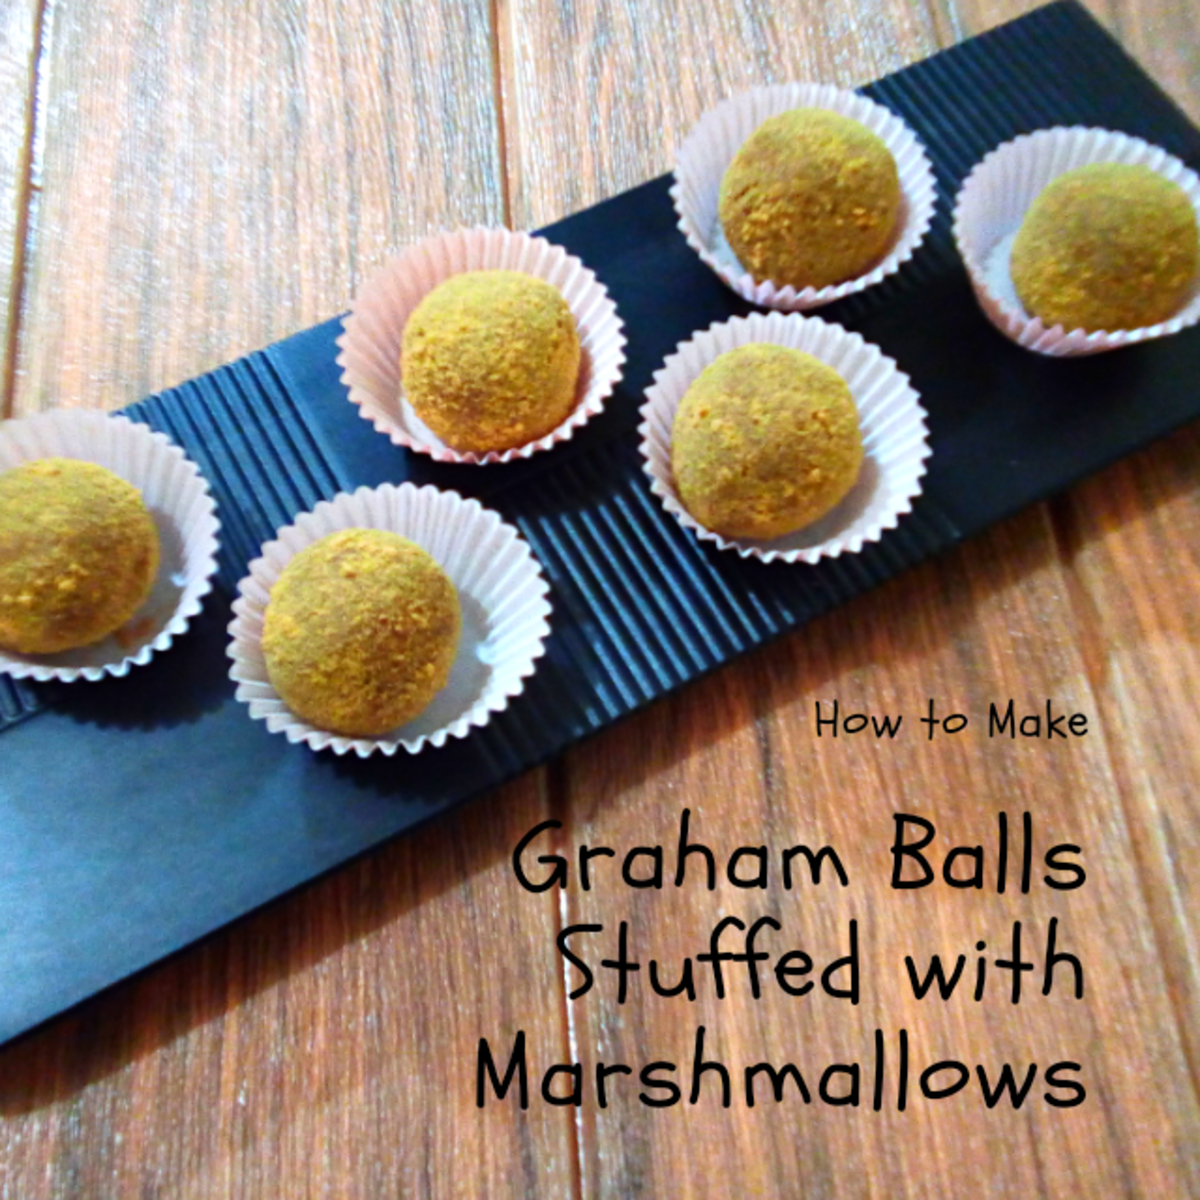 How to Make Graham Balls Stuffed With Marshmallows